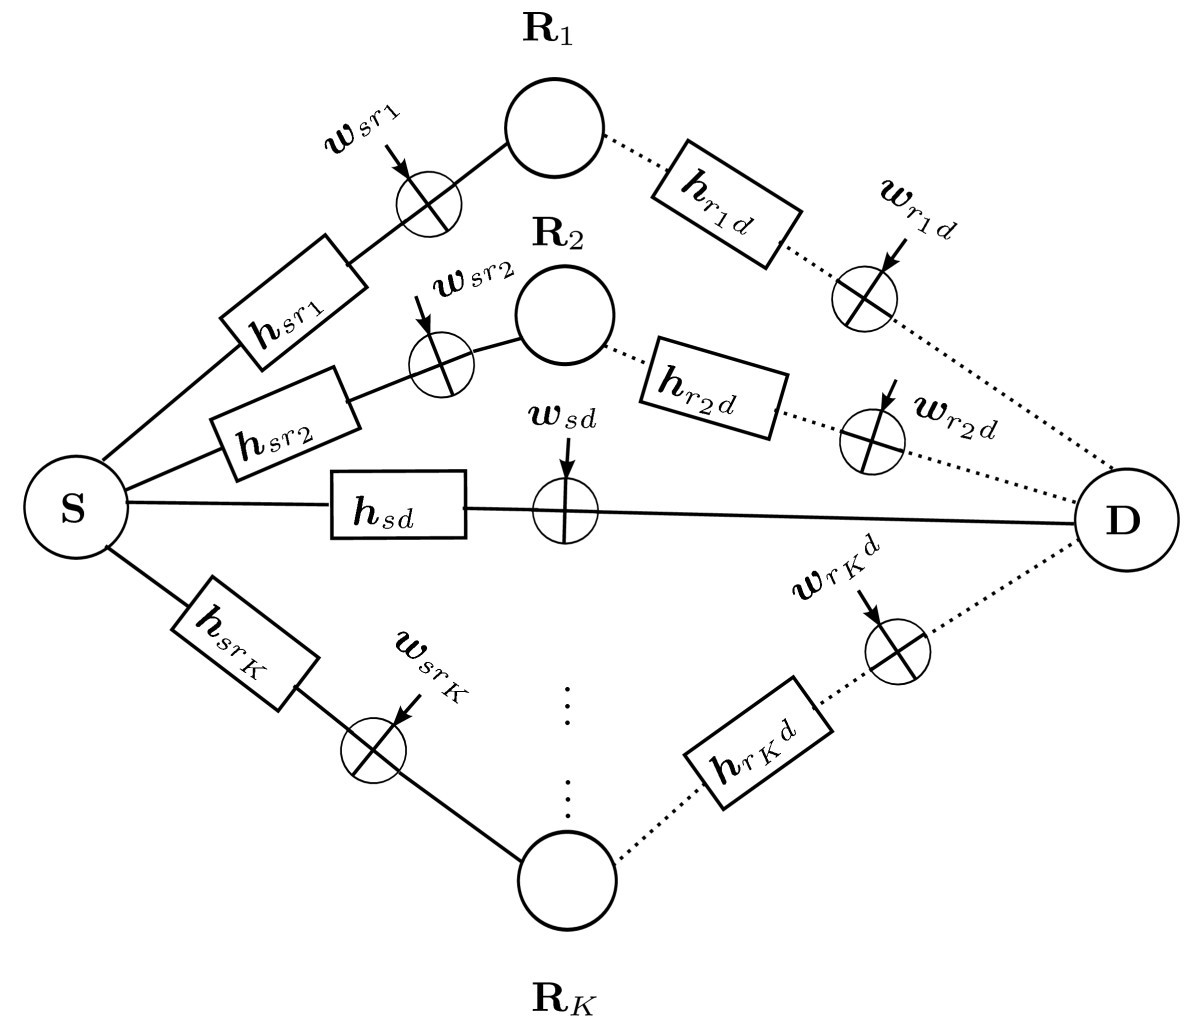 relay selection in cooperative networks with frequency selective Main Sequence Star figure 1 system model